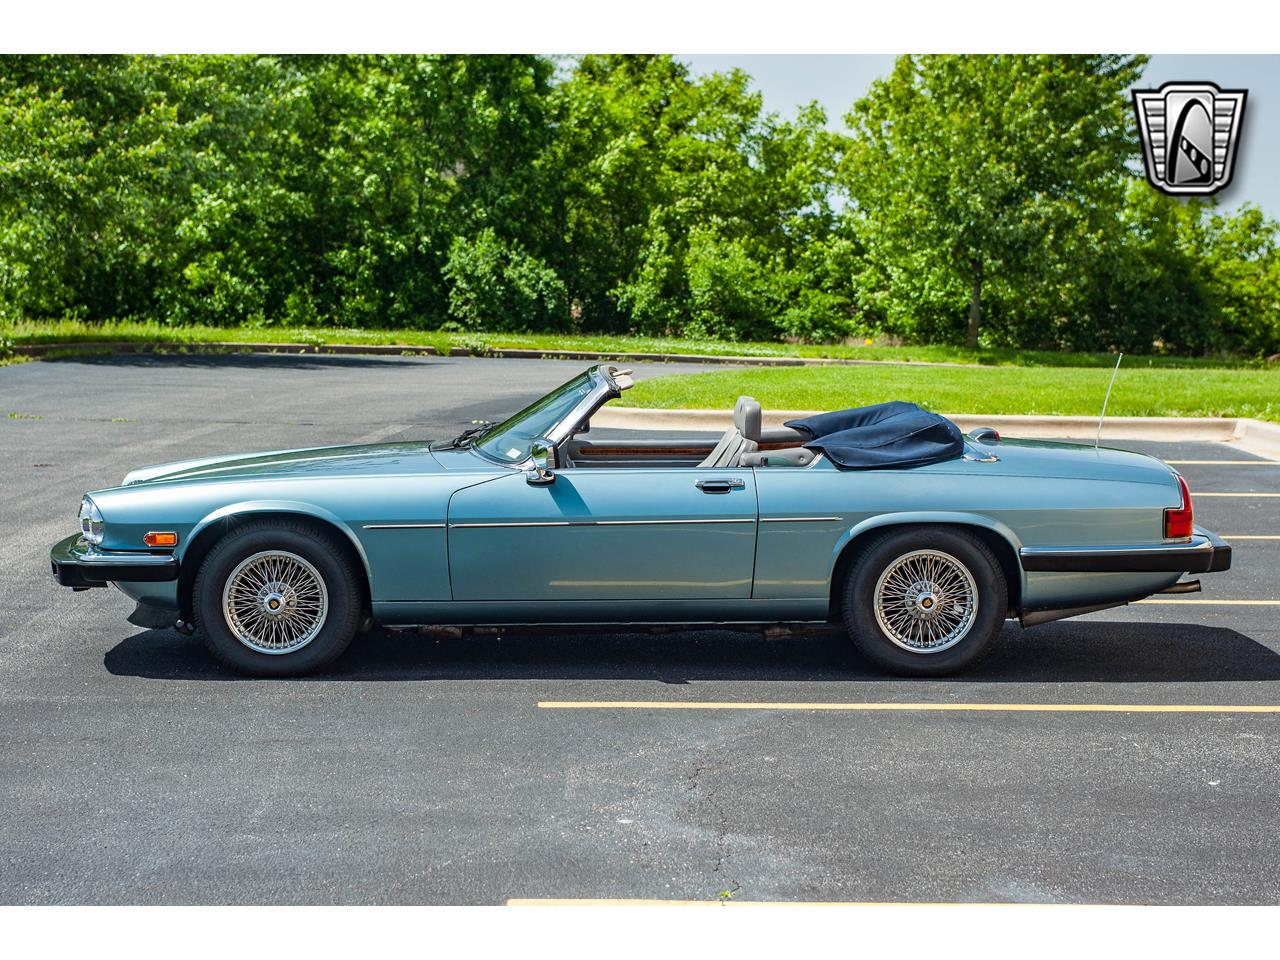 Large Picture of '90 Jaguar XJS located in O'Fallon Illinois Offered by Gateway Classic Cars - St. Louis - QB9E